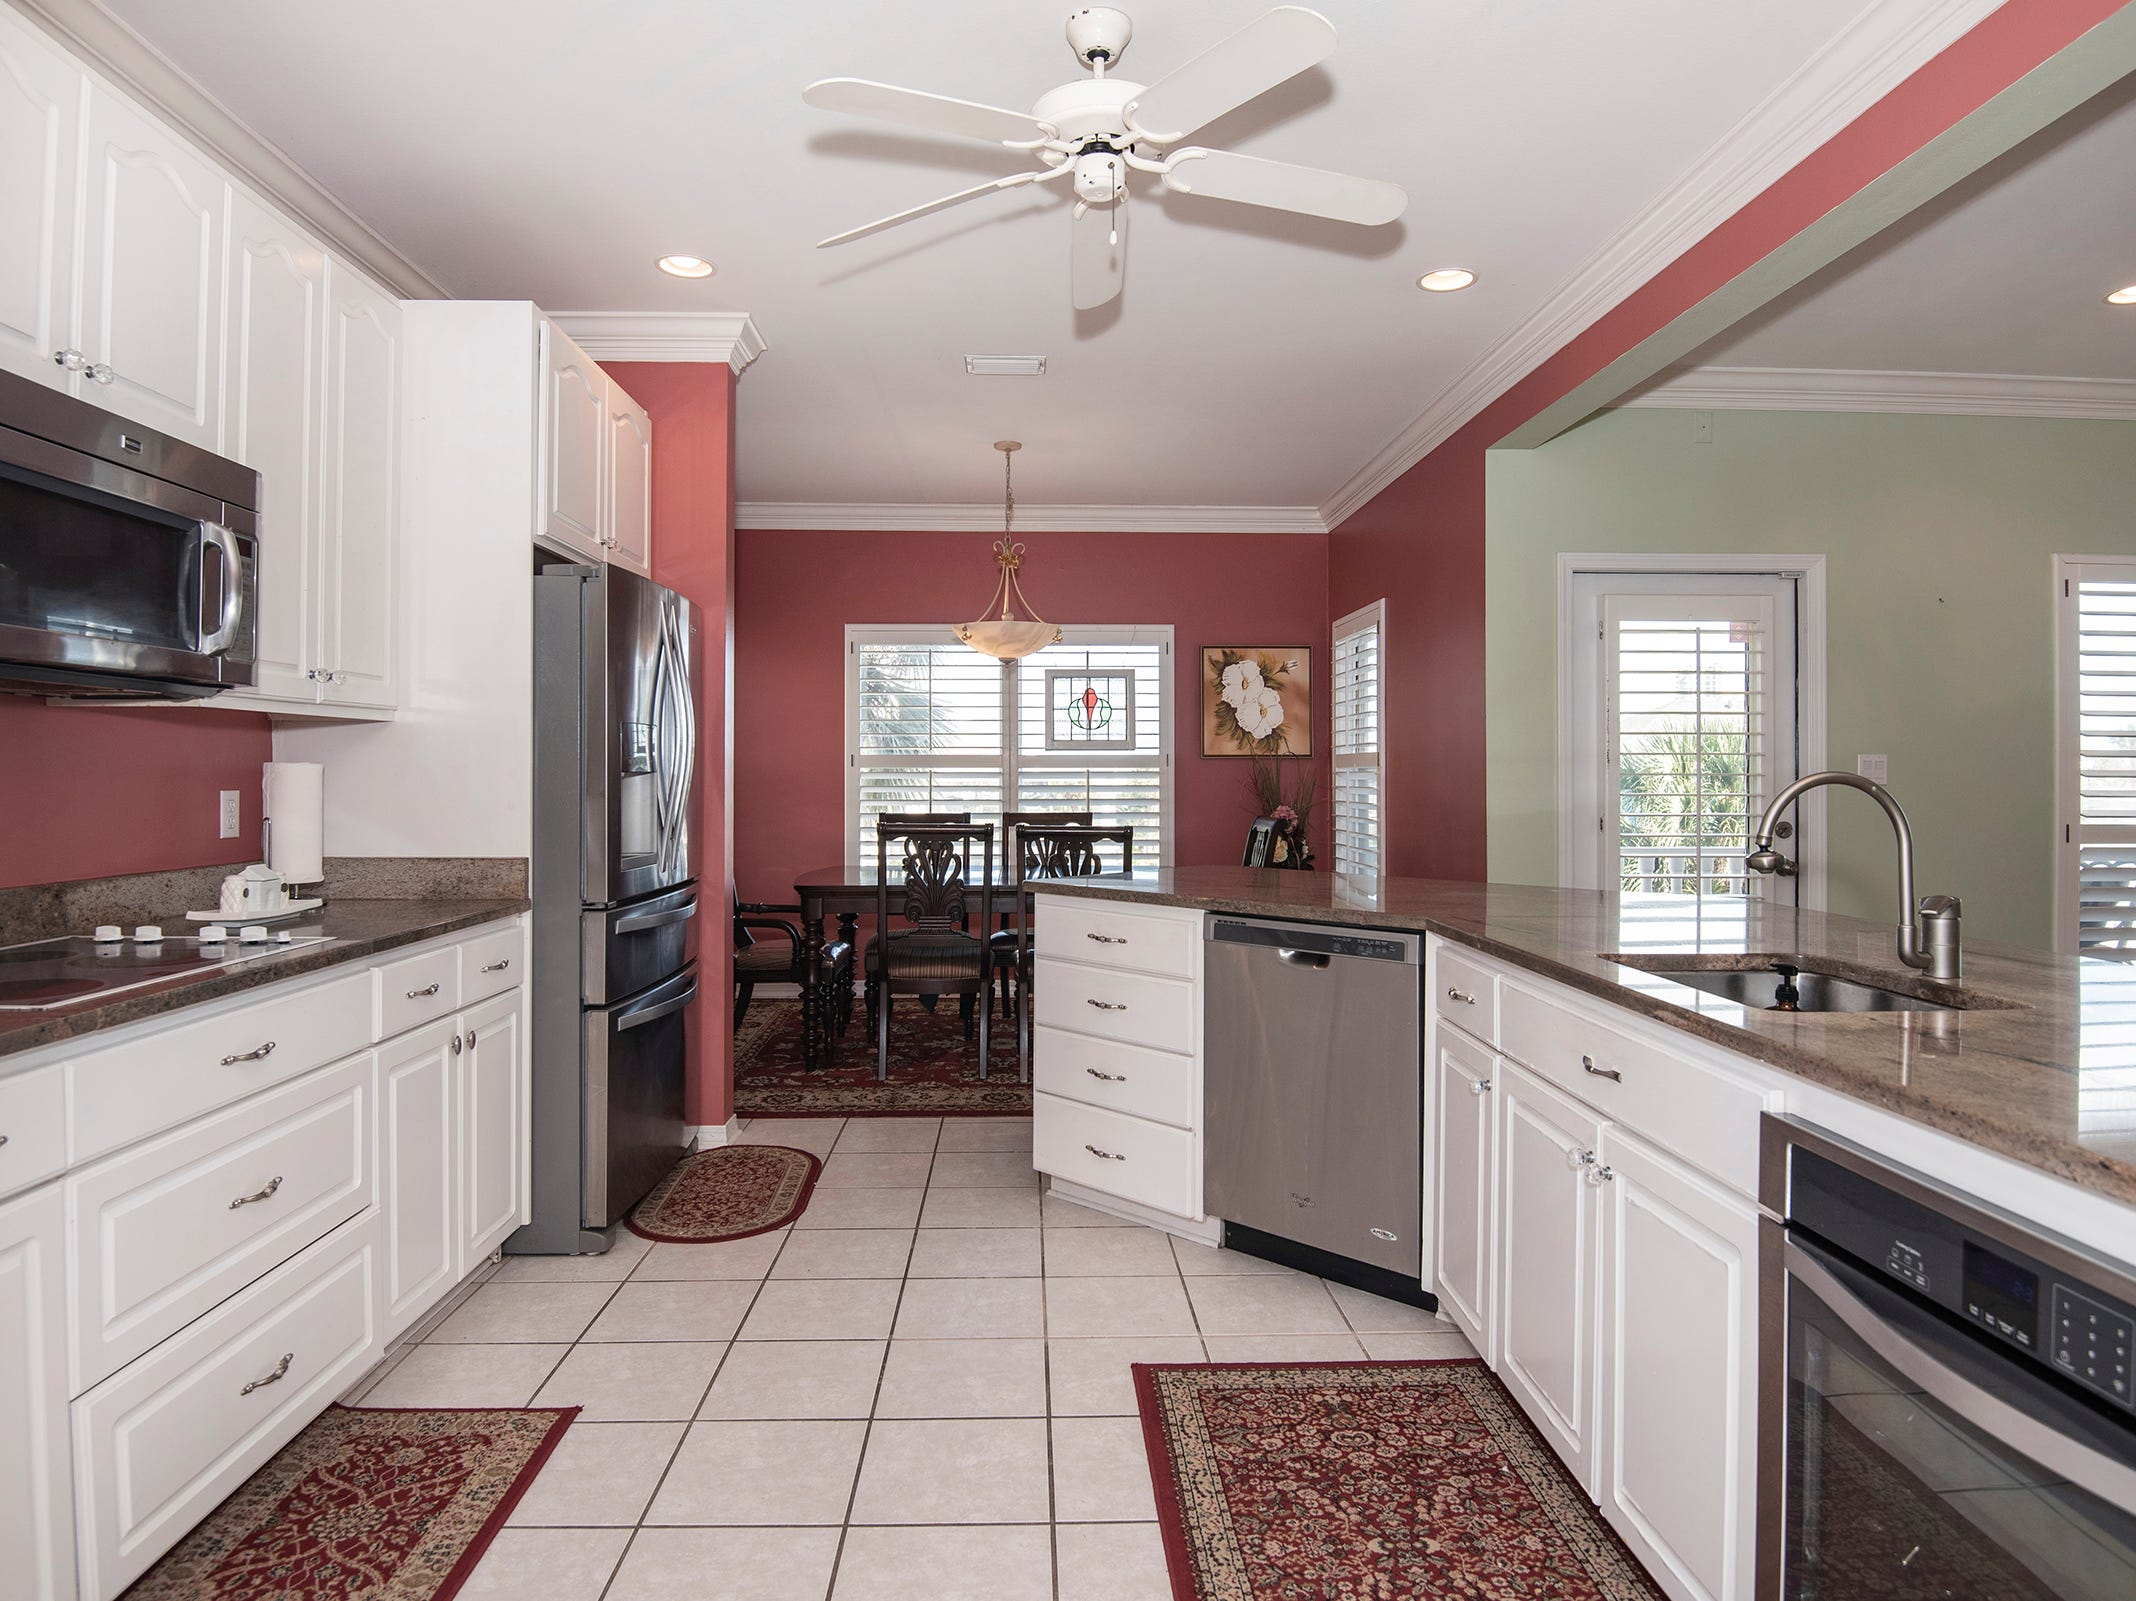 1 La Caribe Dr.The kitchen is open to the living and dining space.